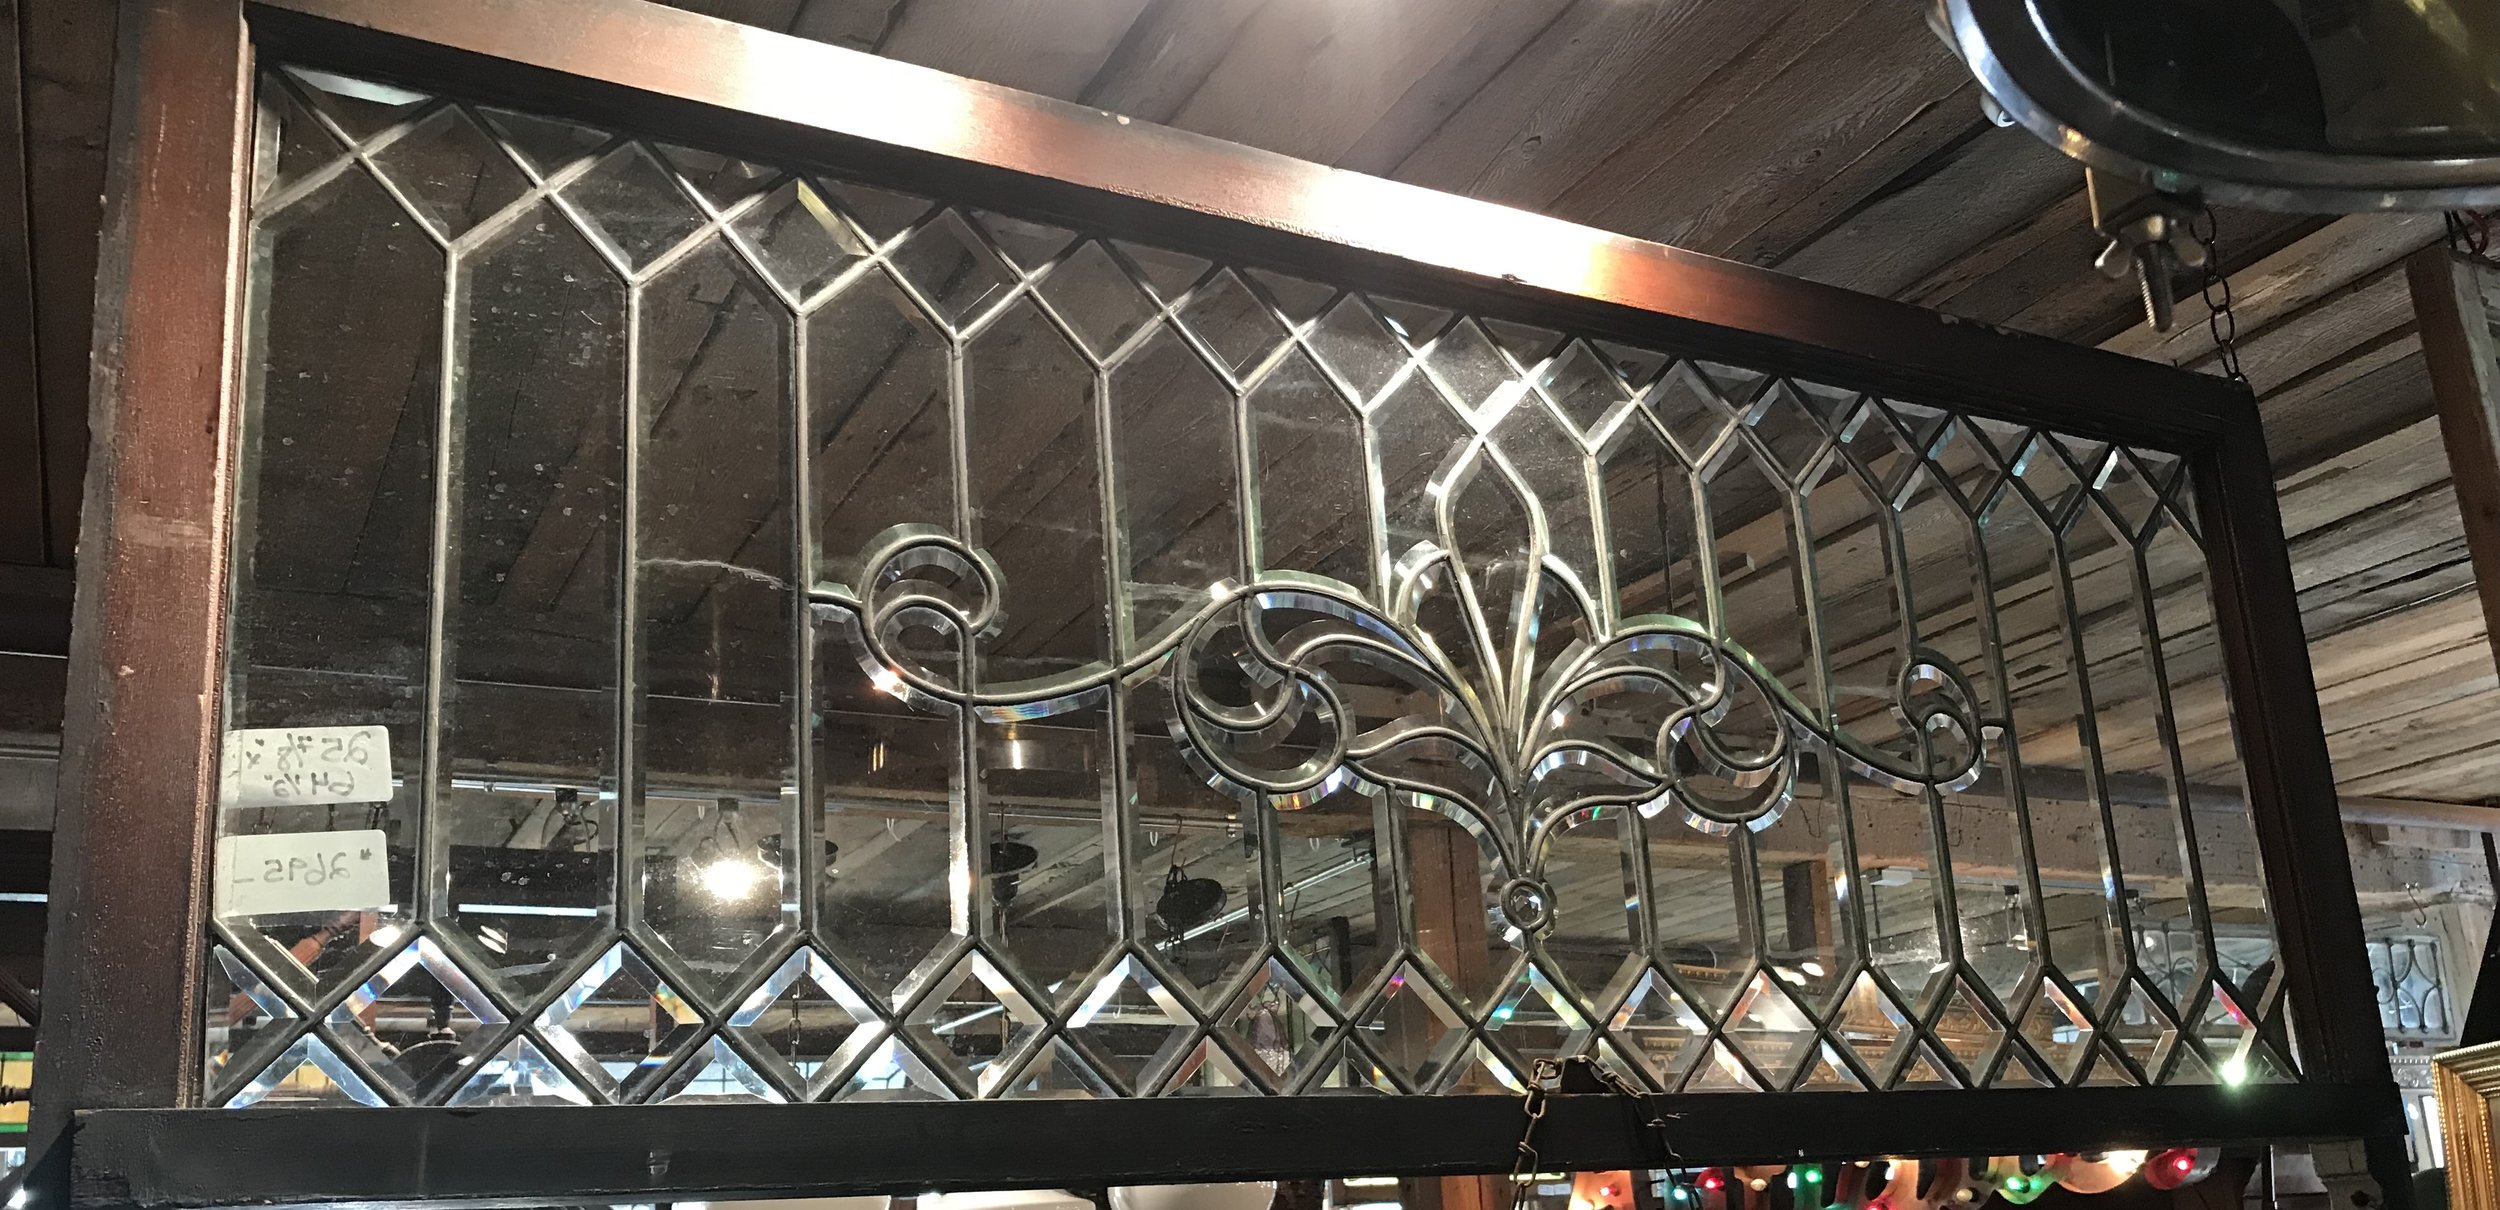 Stunning beveled and leaded glass transom window